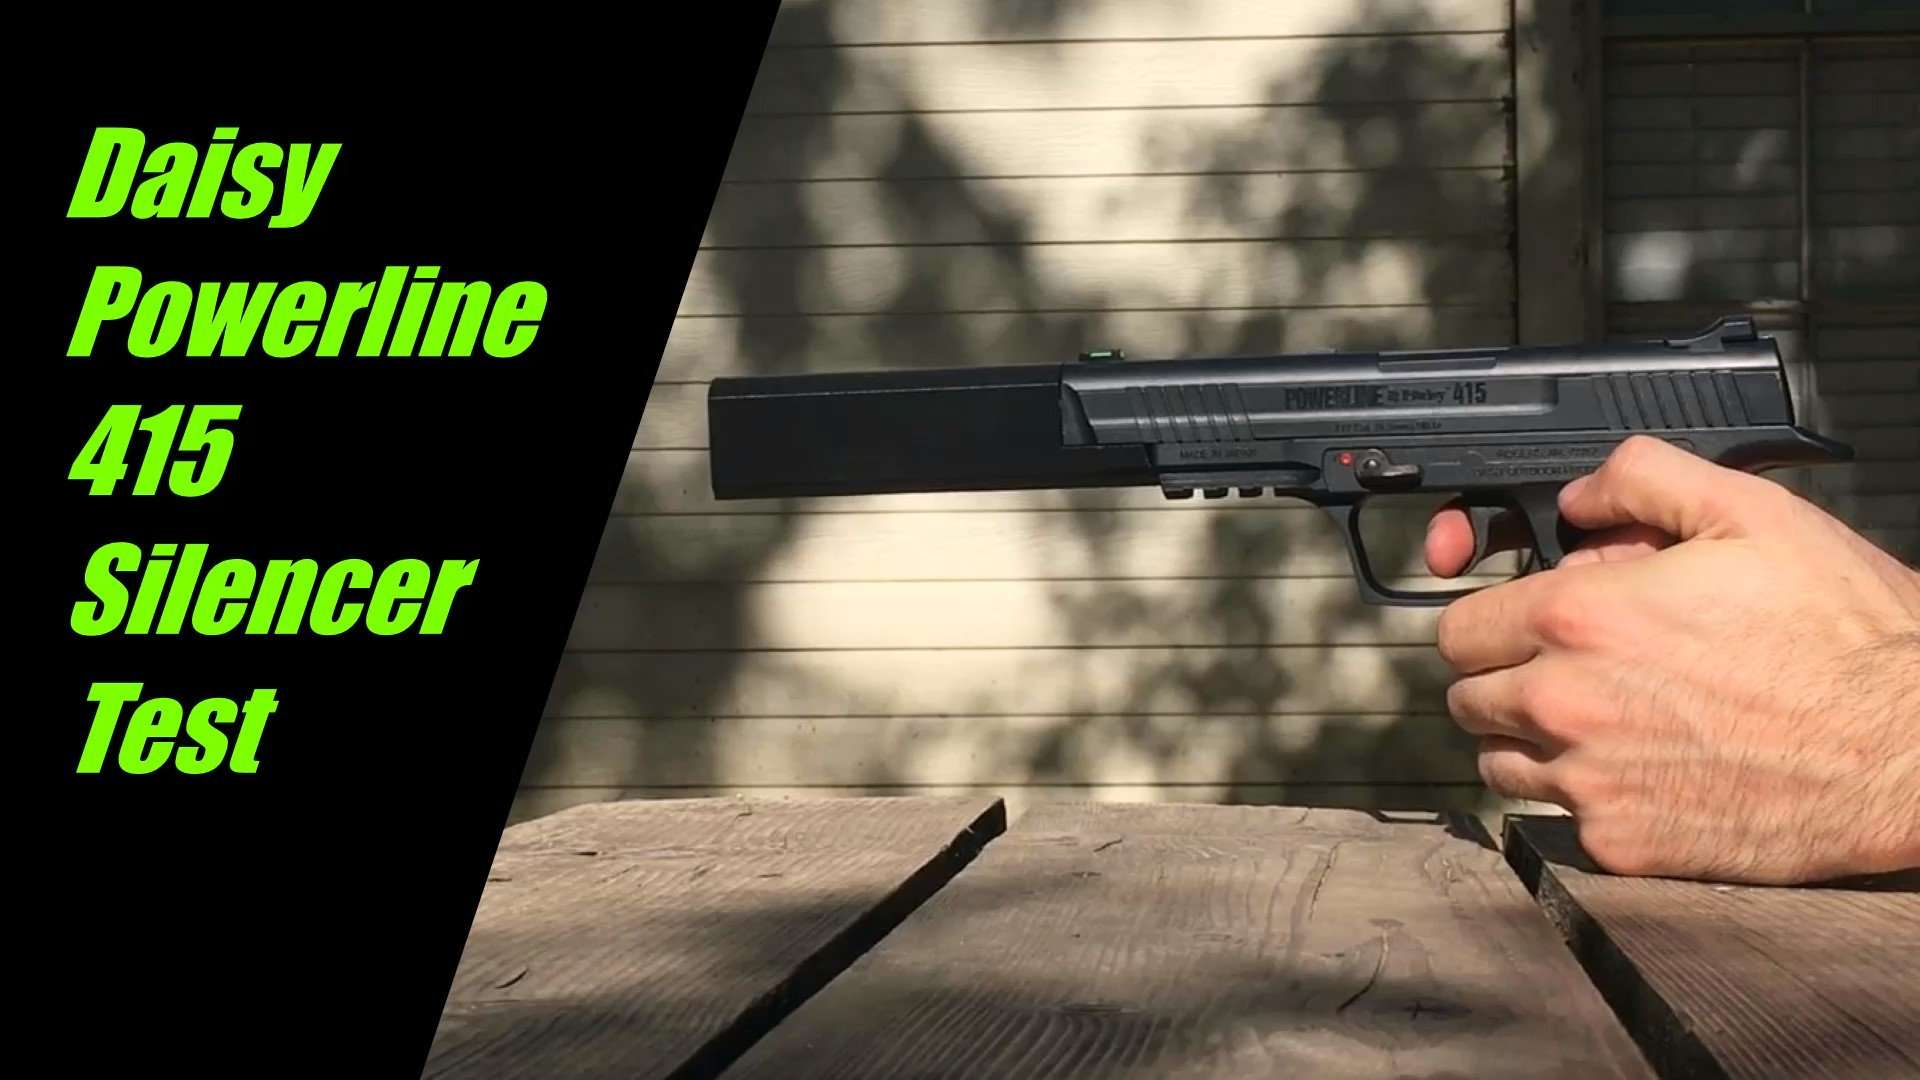 Daisy Powerline 415 Silencer Test Featured Image